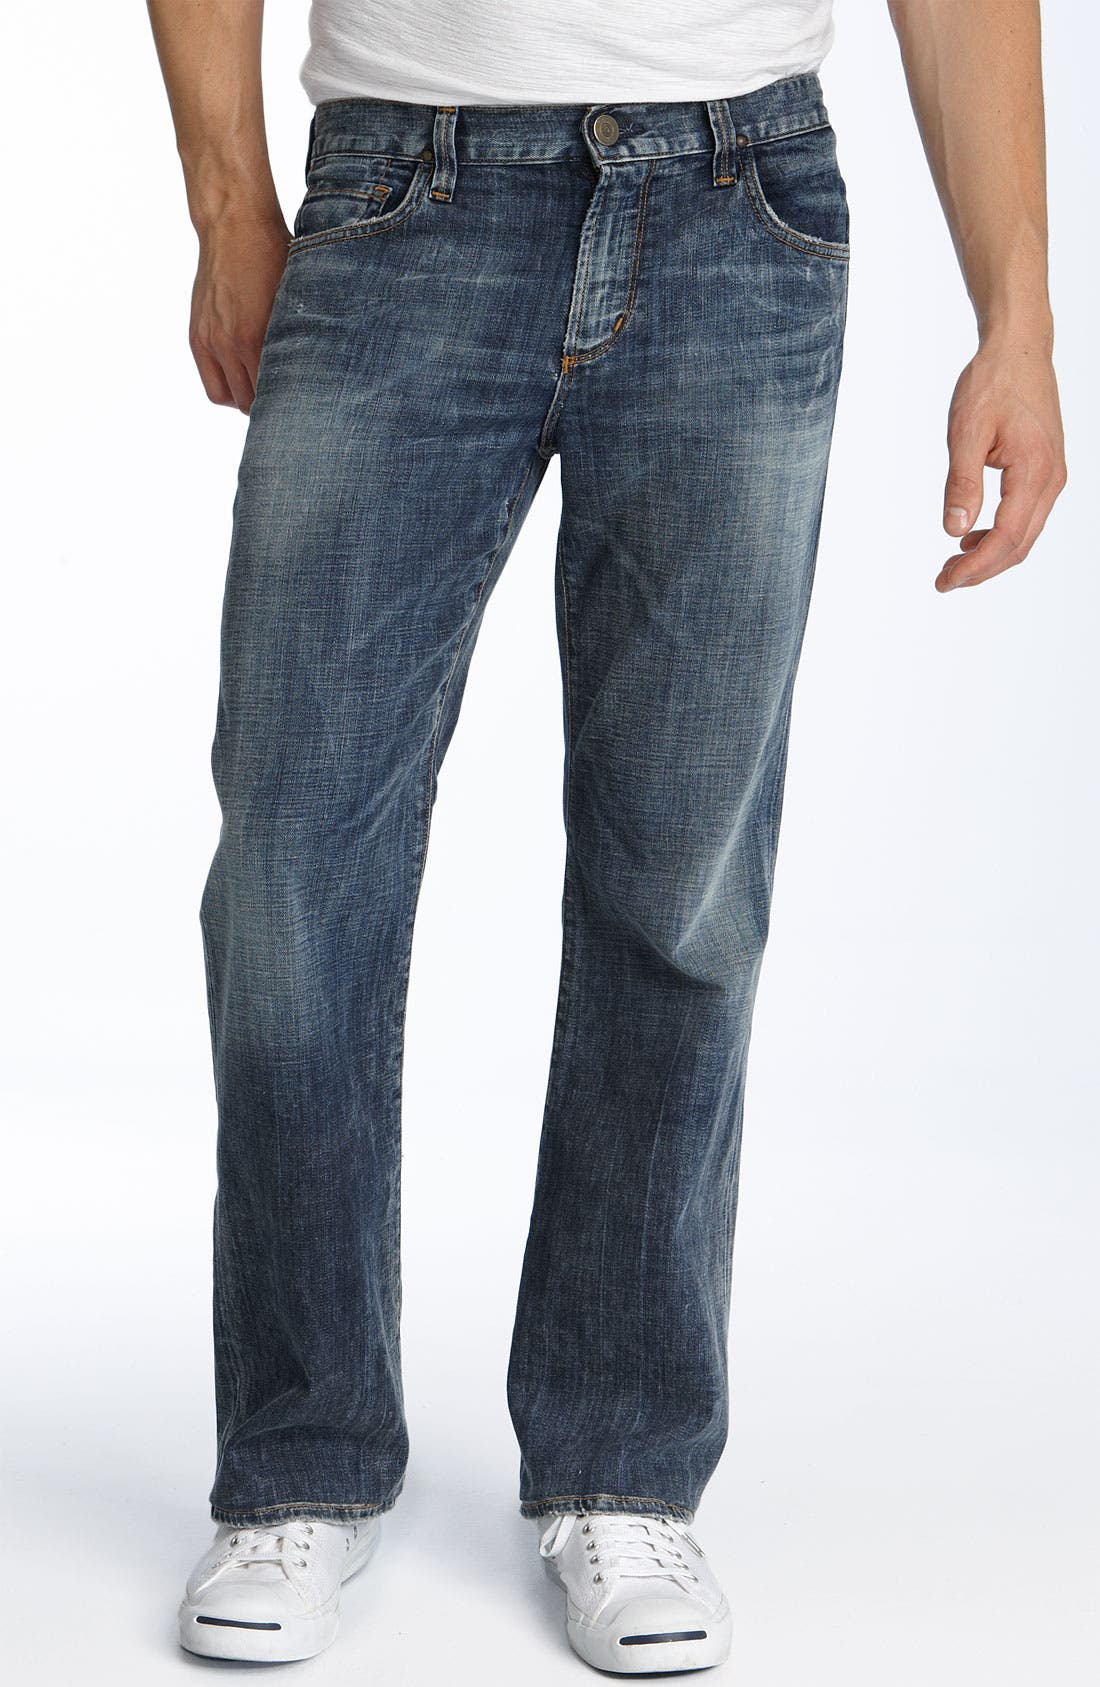 Alternate Image 1 Selected - Citizens of Humanity Bootcut Jeans (Brice)